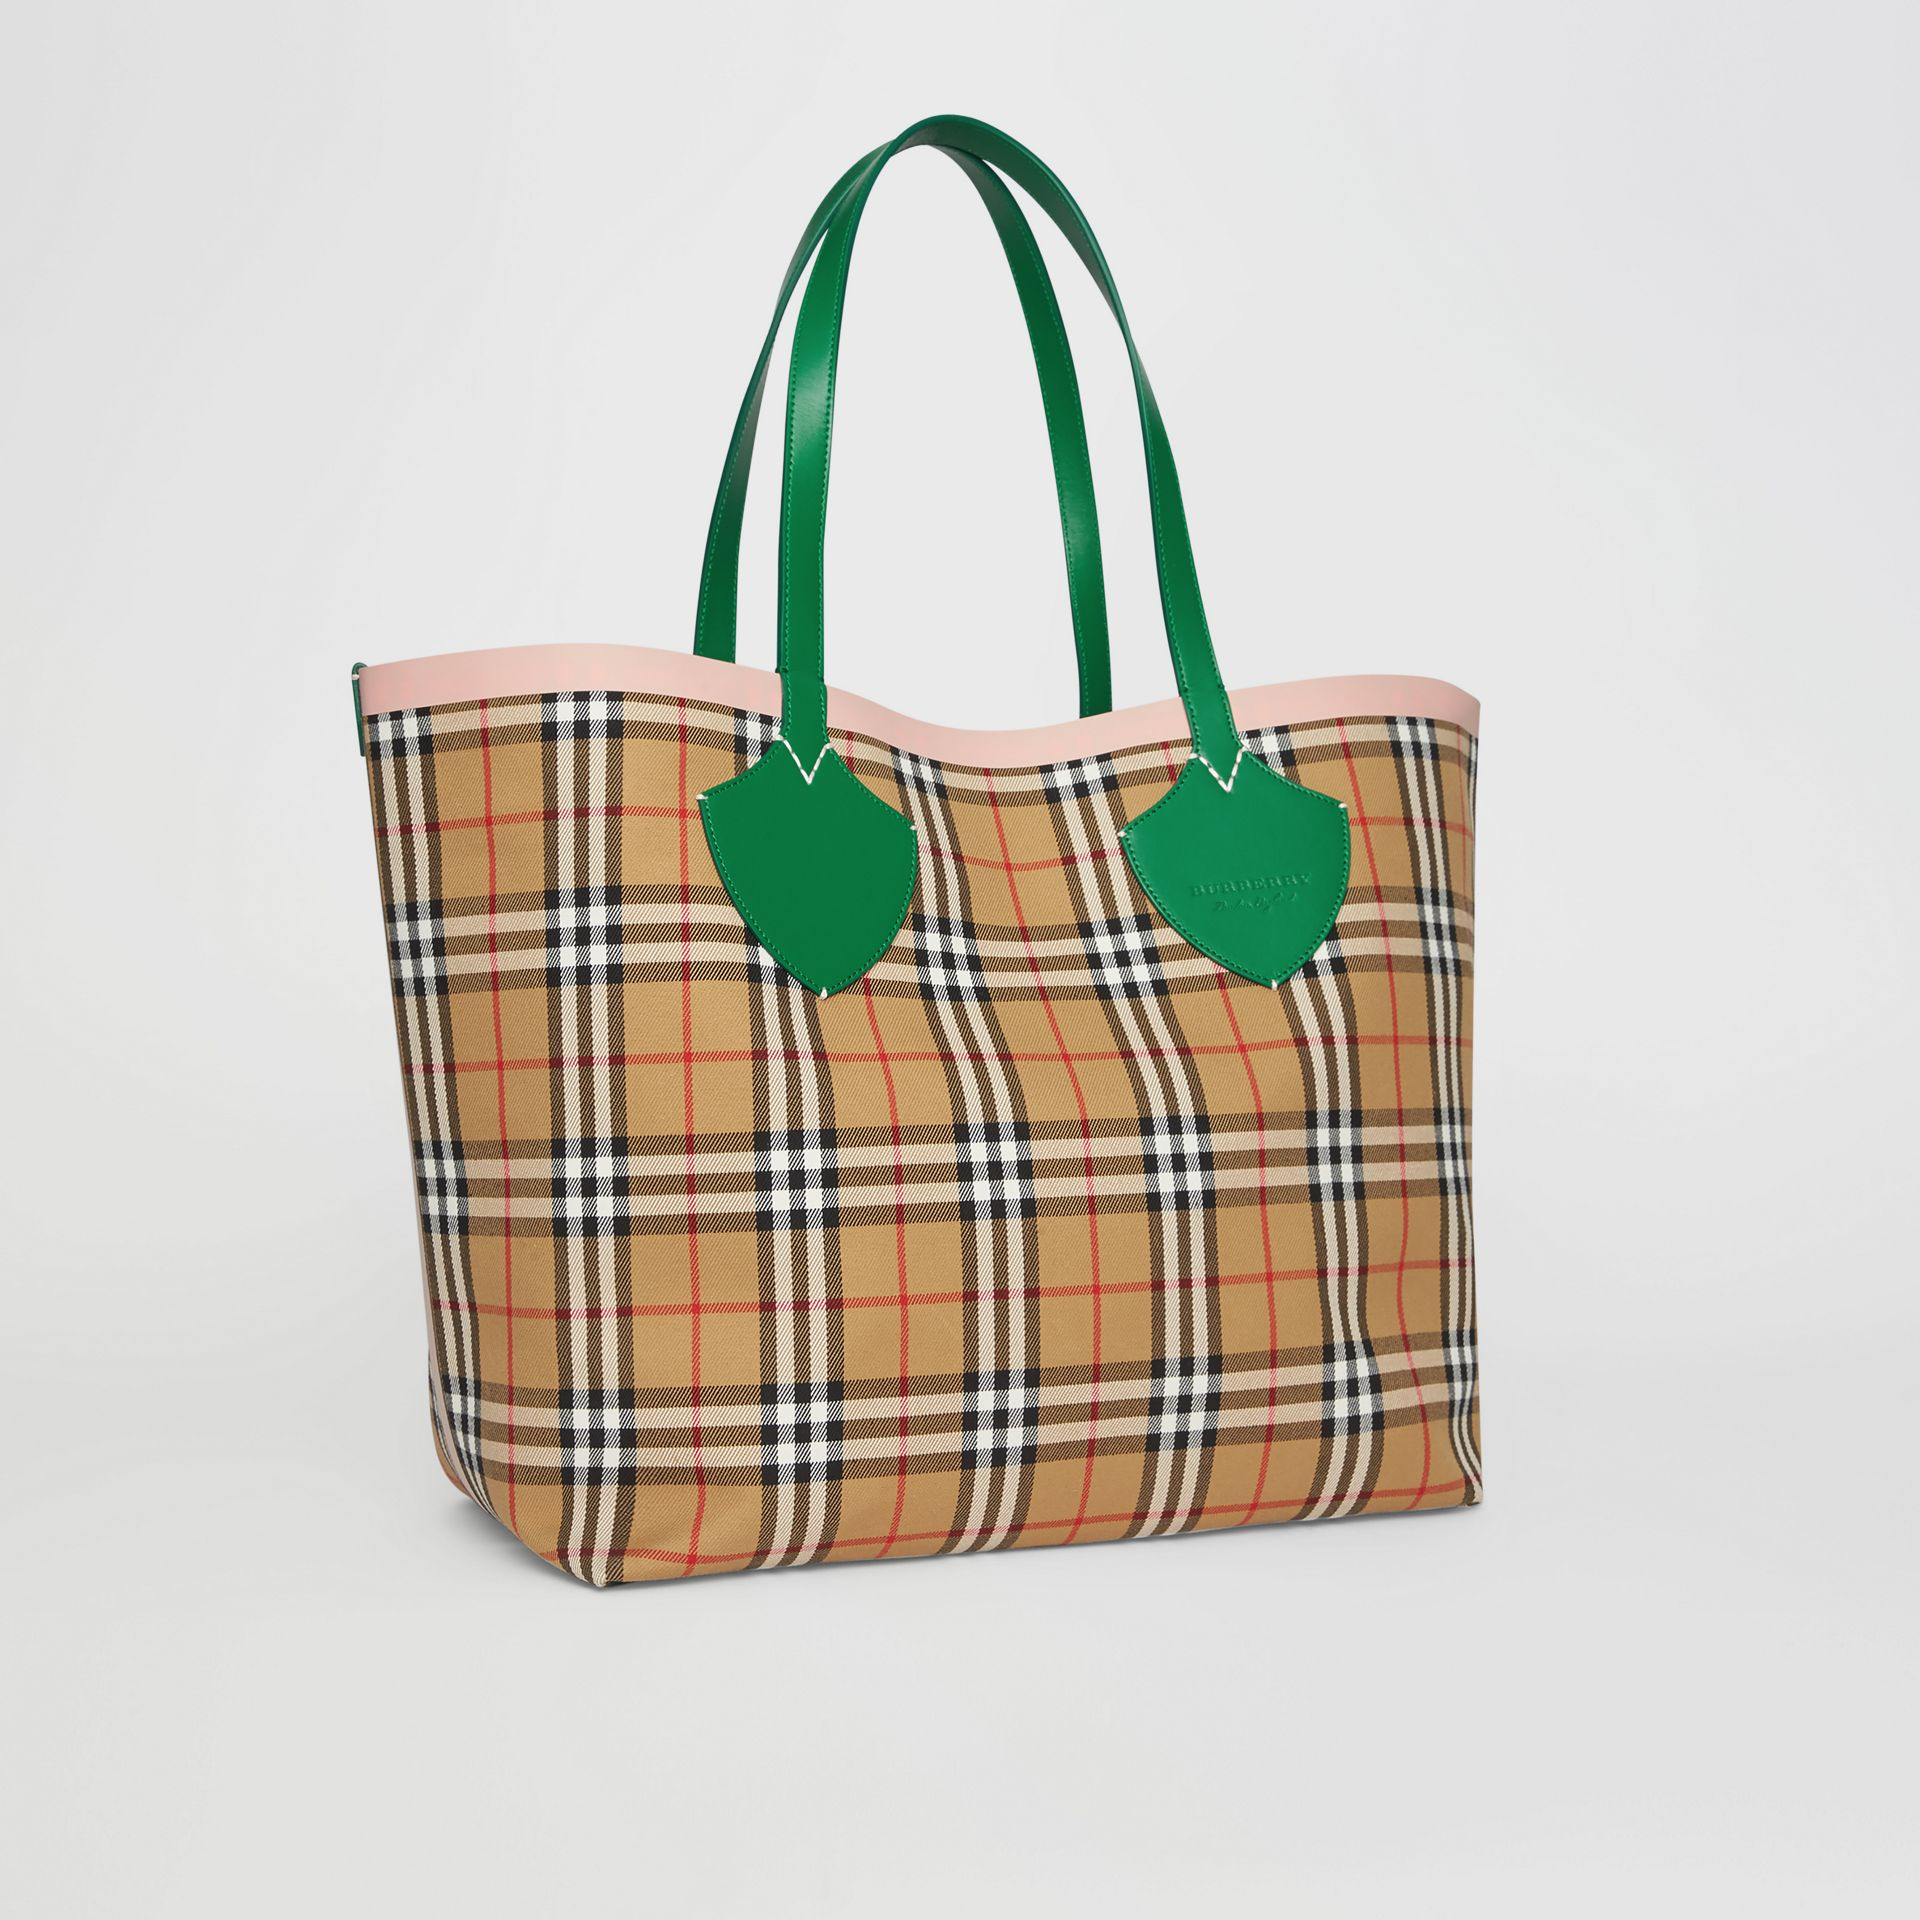 The Giant Reversible Tote in Vintage Check in Palm Green/pink Apricot - Women | Burberry Singapore - gallery image 8